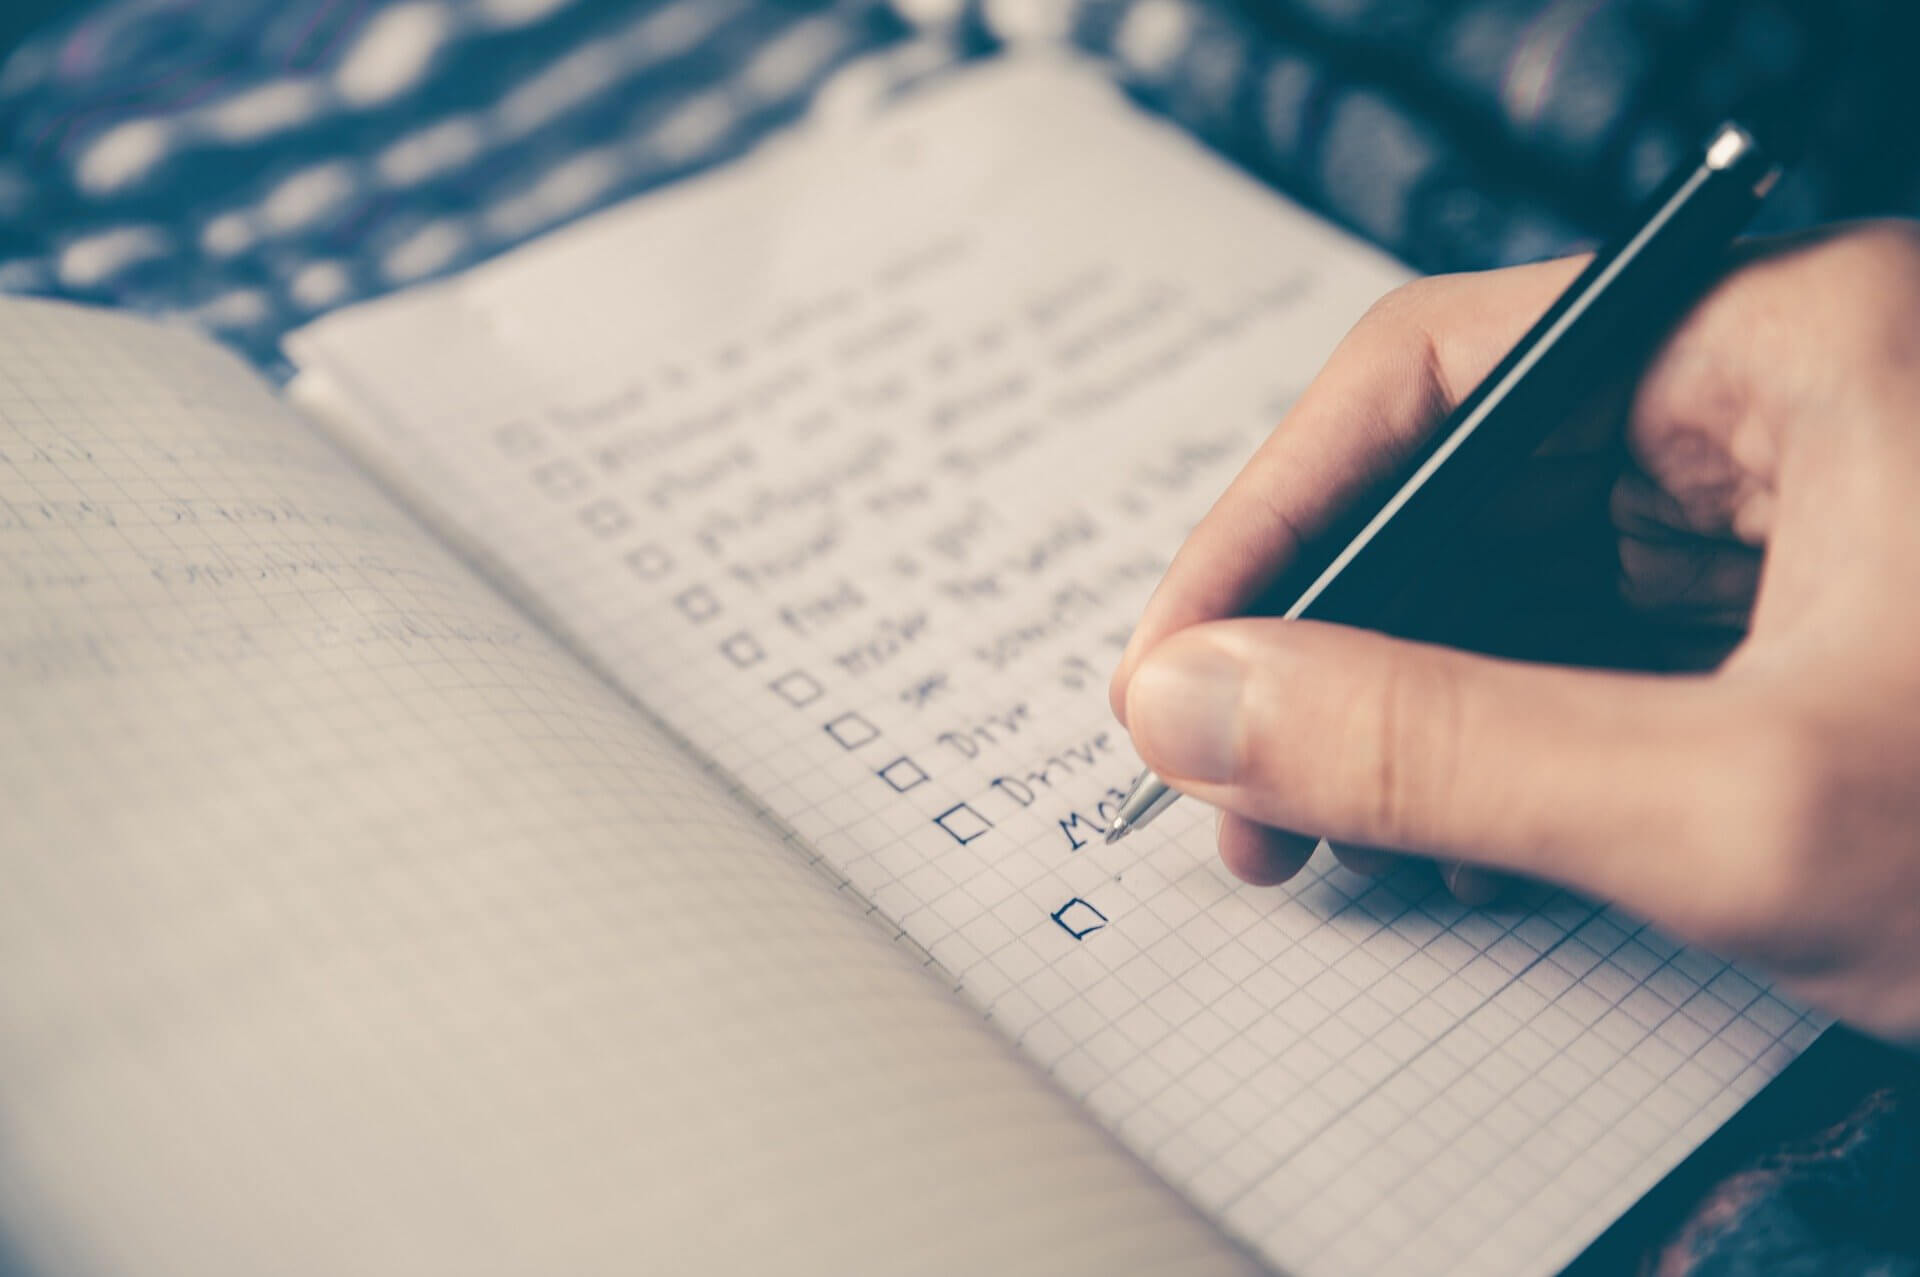 The Amazing 1099 Checklist for Preparing Your Federal Taxes as an Independent Contractor